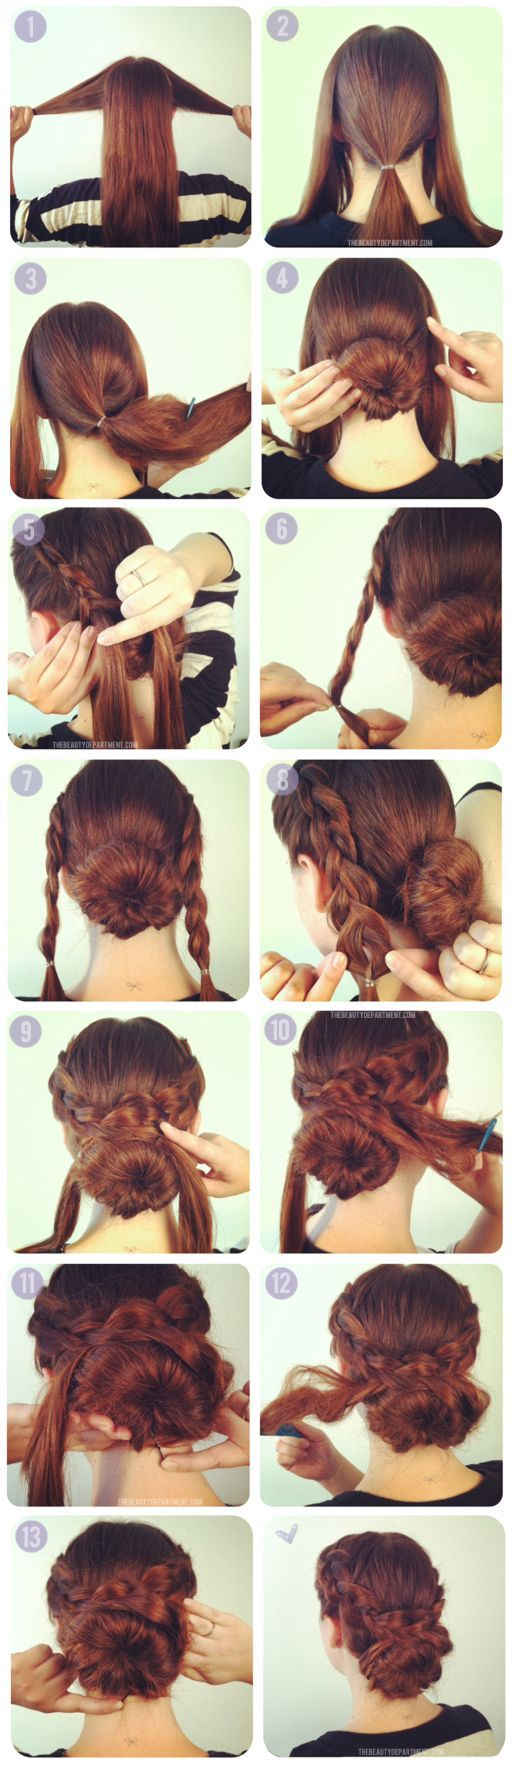 25 unique victorian hairstyles ideas on pinterest victorian 2 inside out french braids 1 bun step by step tutorial on http ccuart Image collections